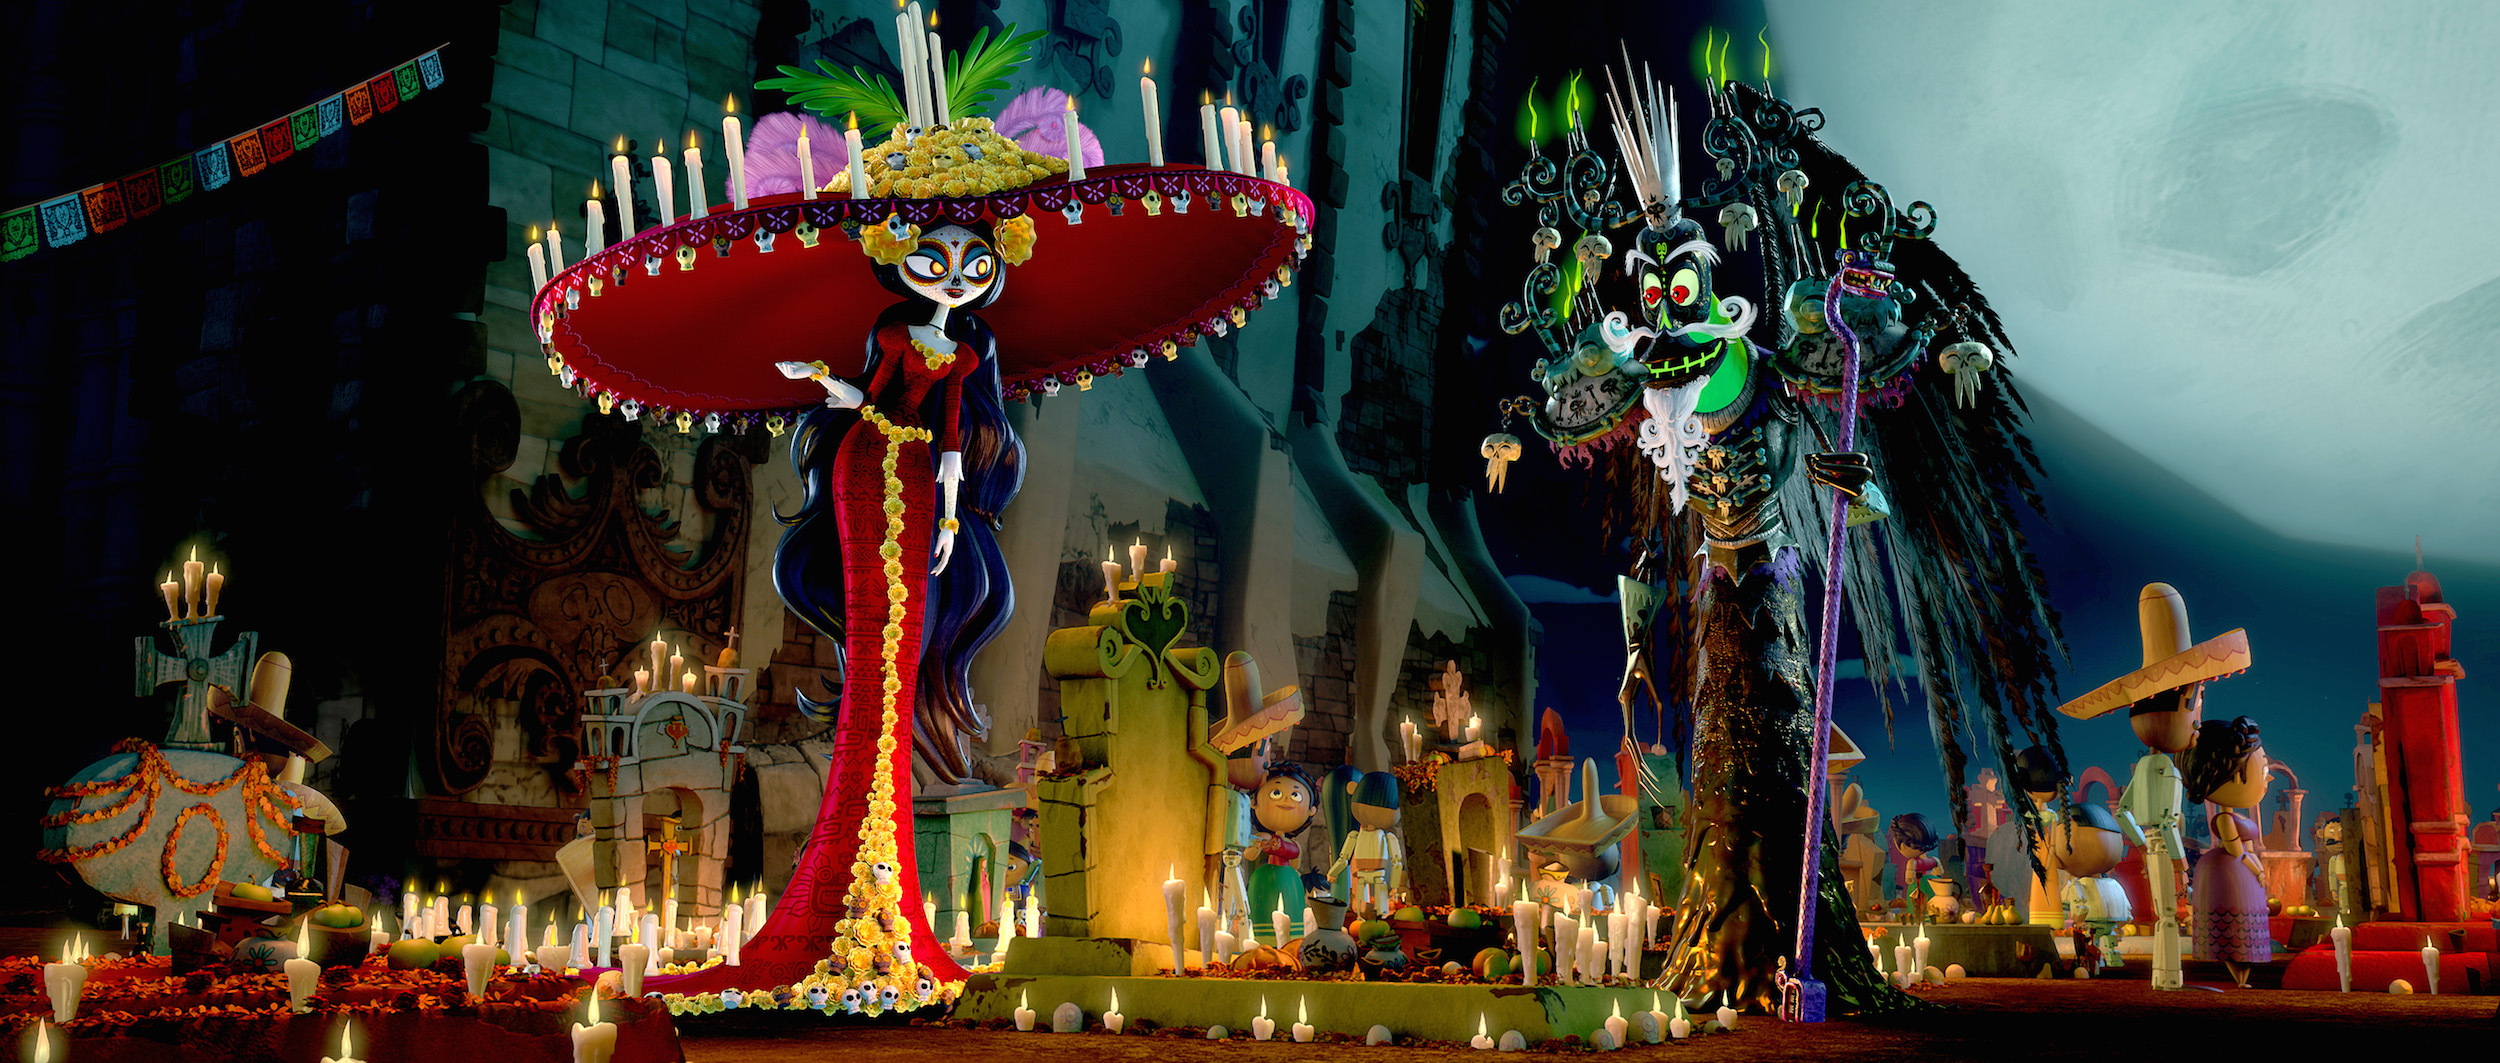 Character Design The Book Of Life : Reasons the book of life is best animated movie ever